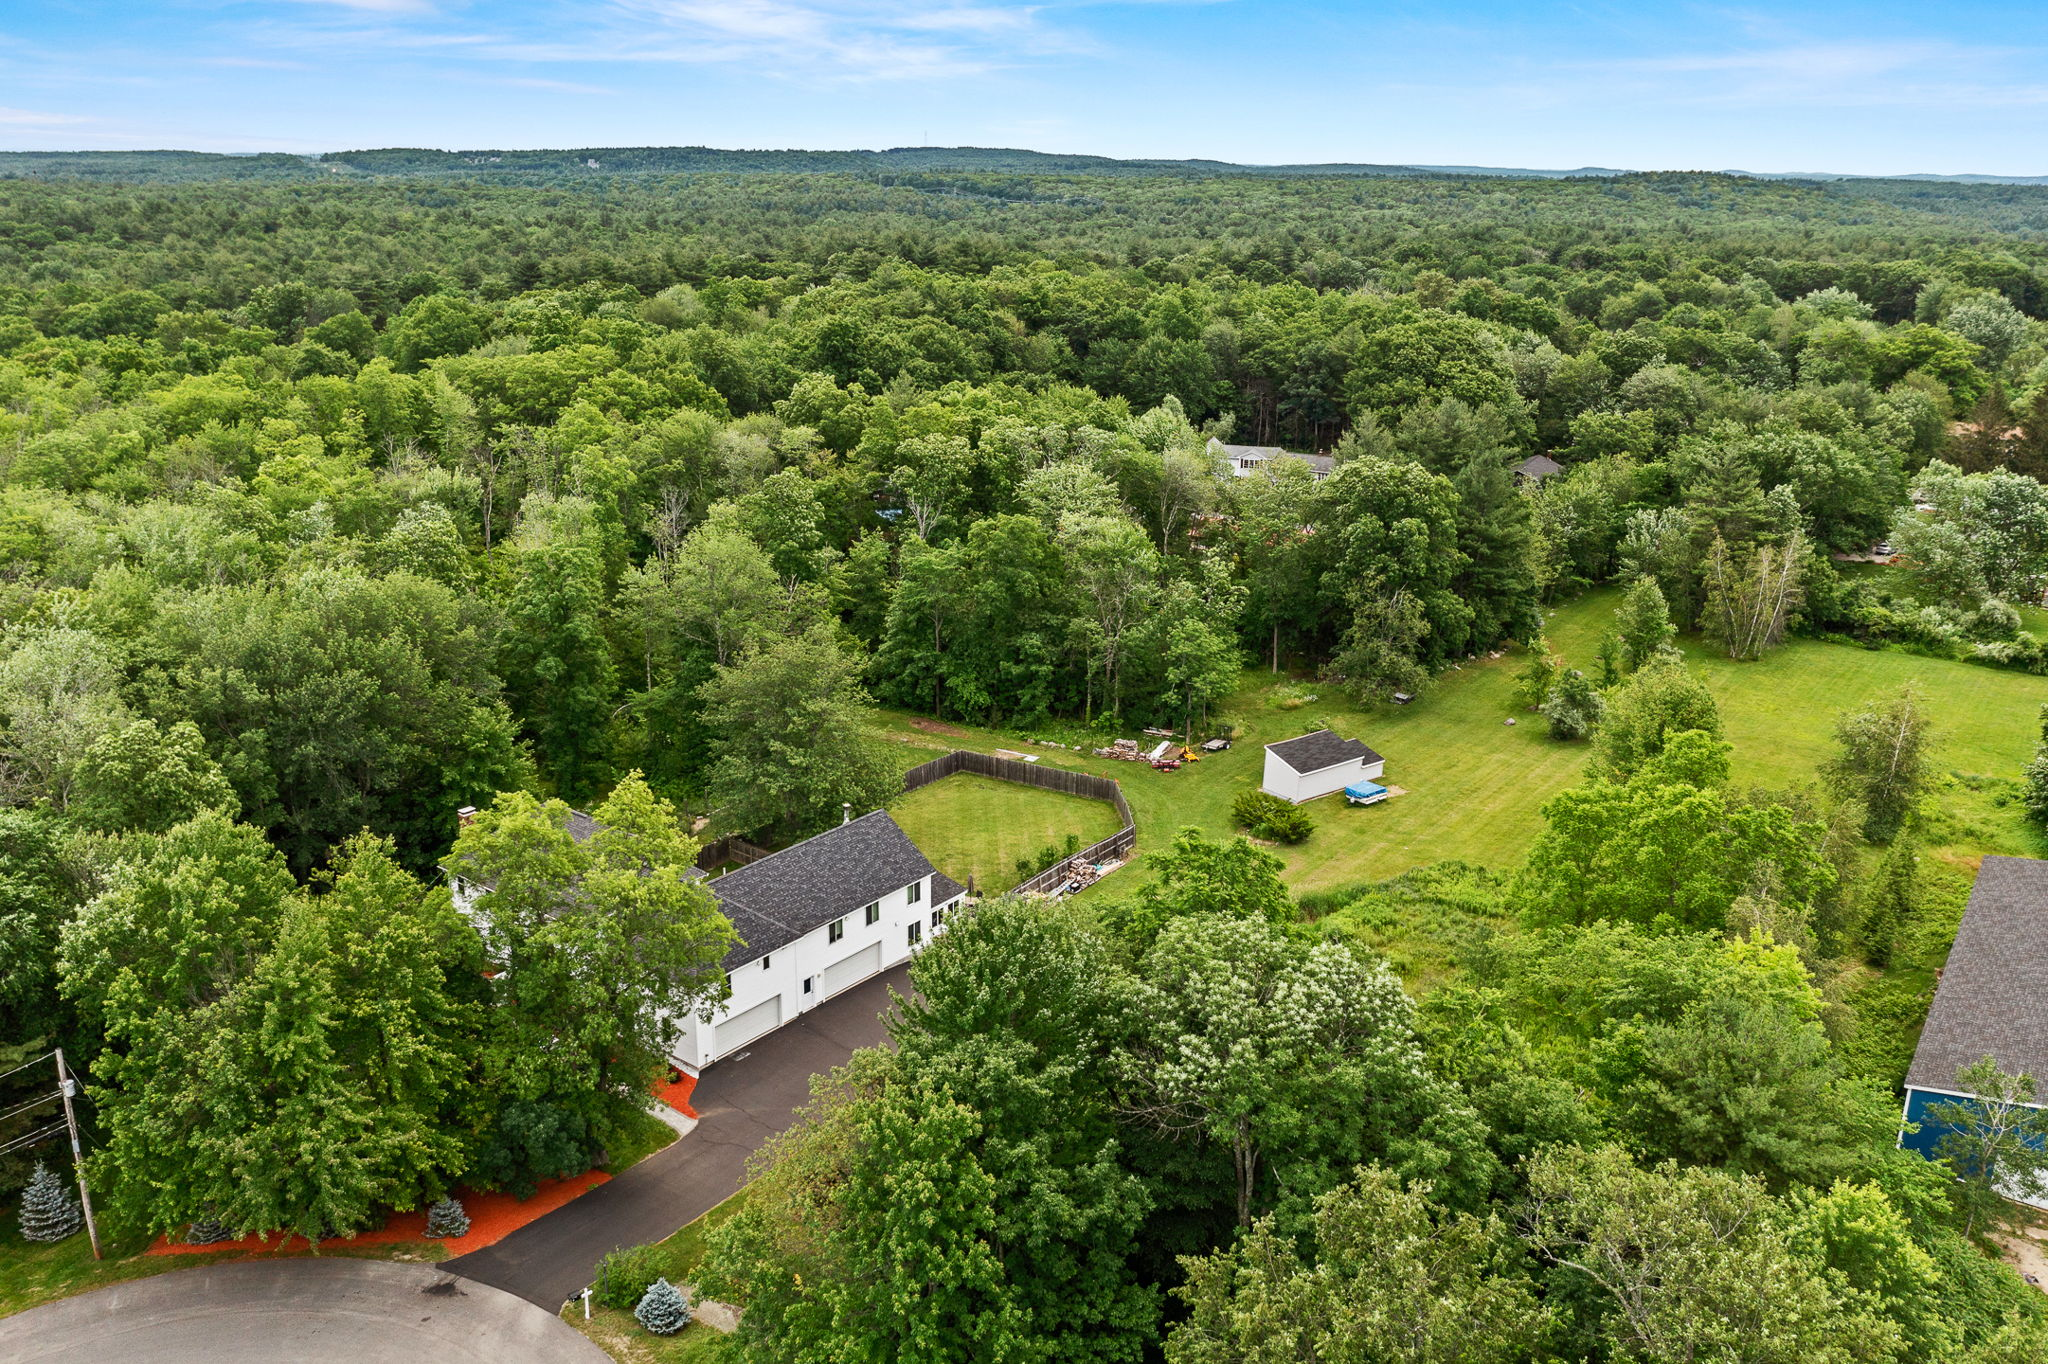 7 Newhouse Dr, Derry, NH 03038, US